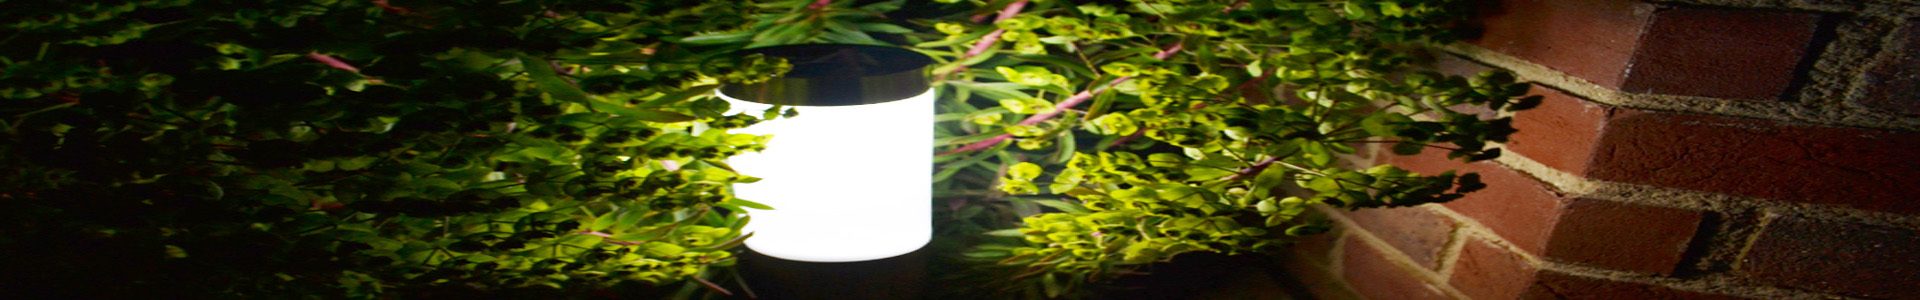 brightest solar walkway lights